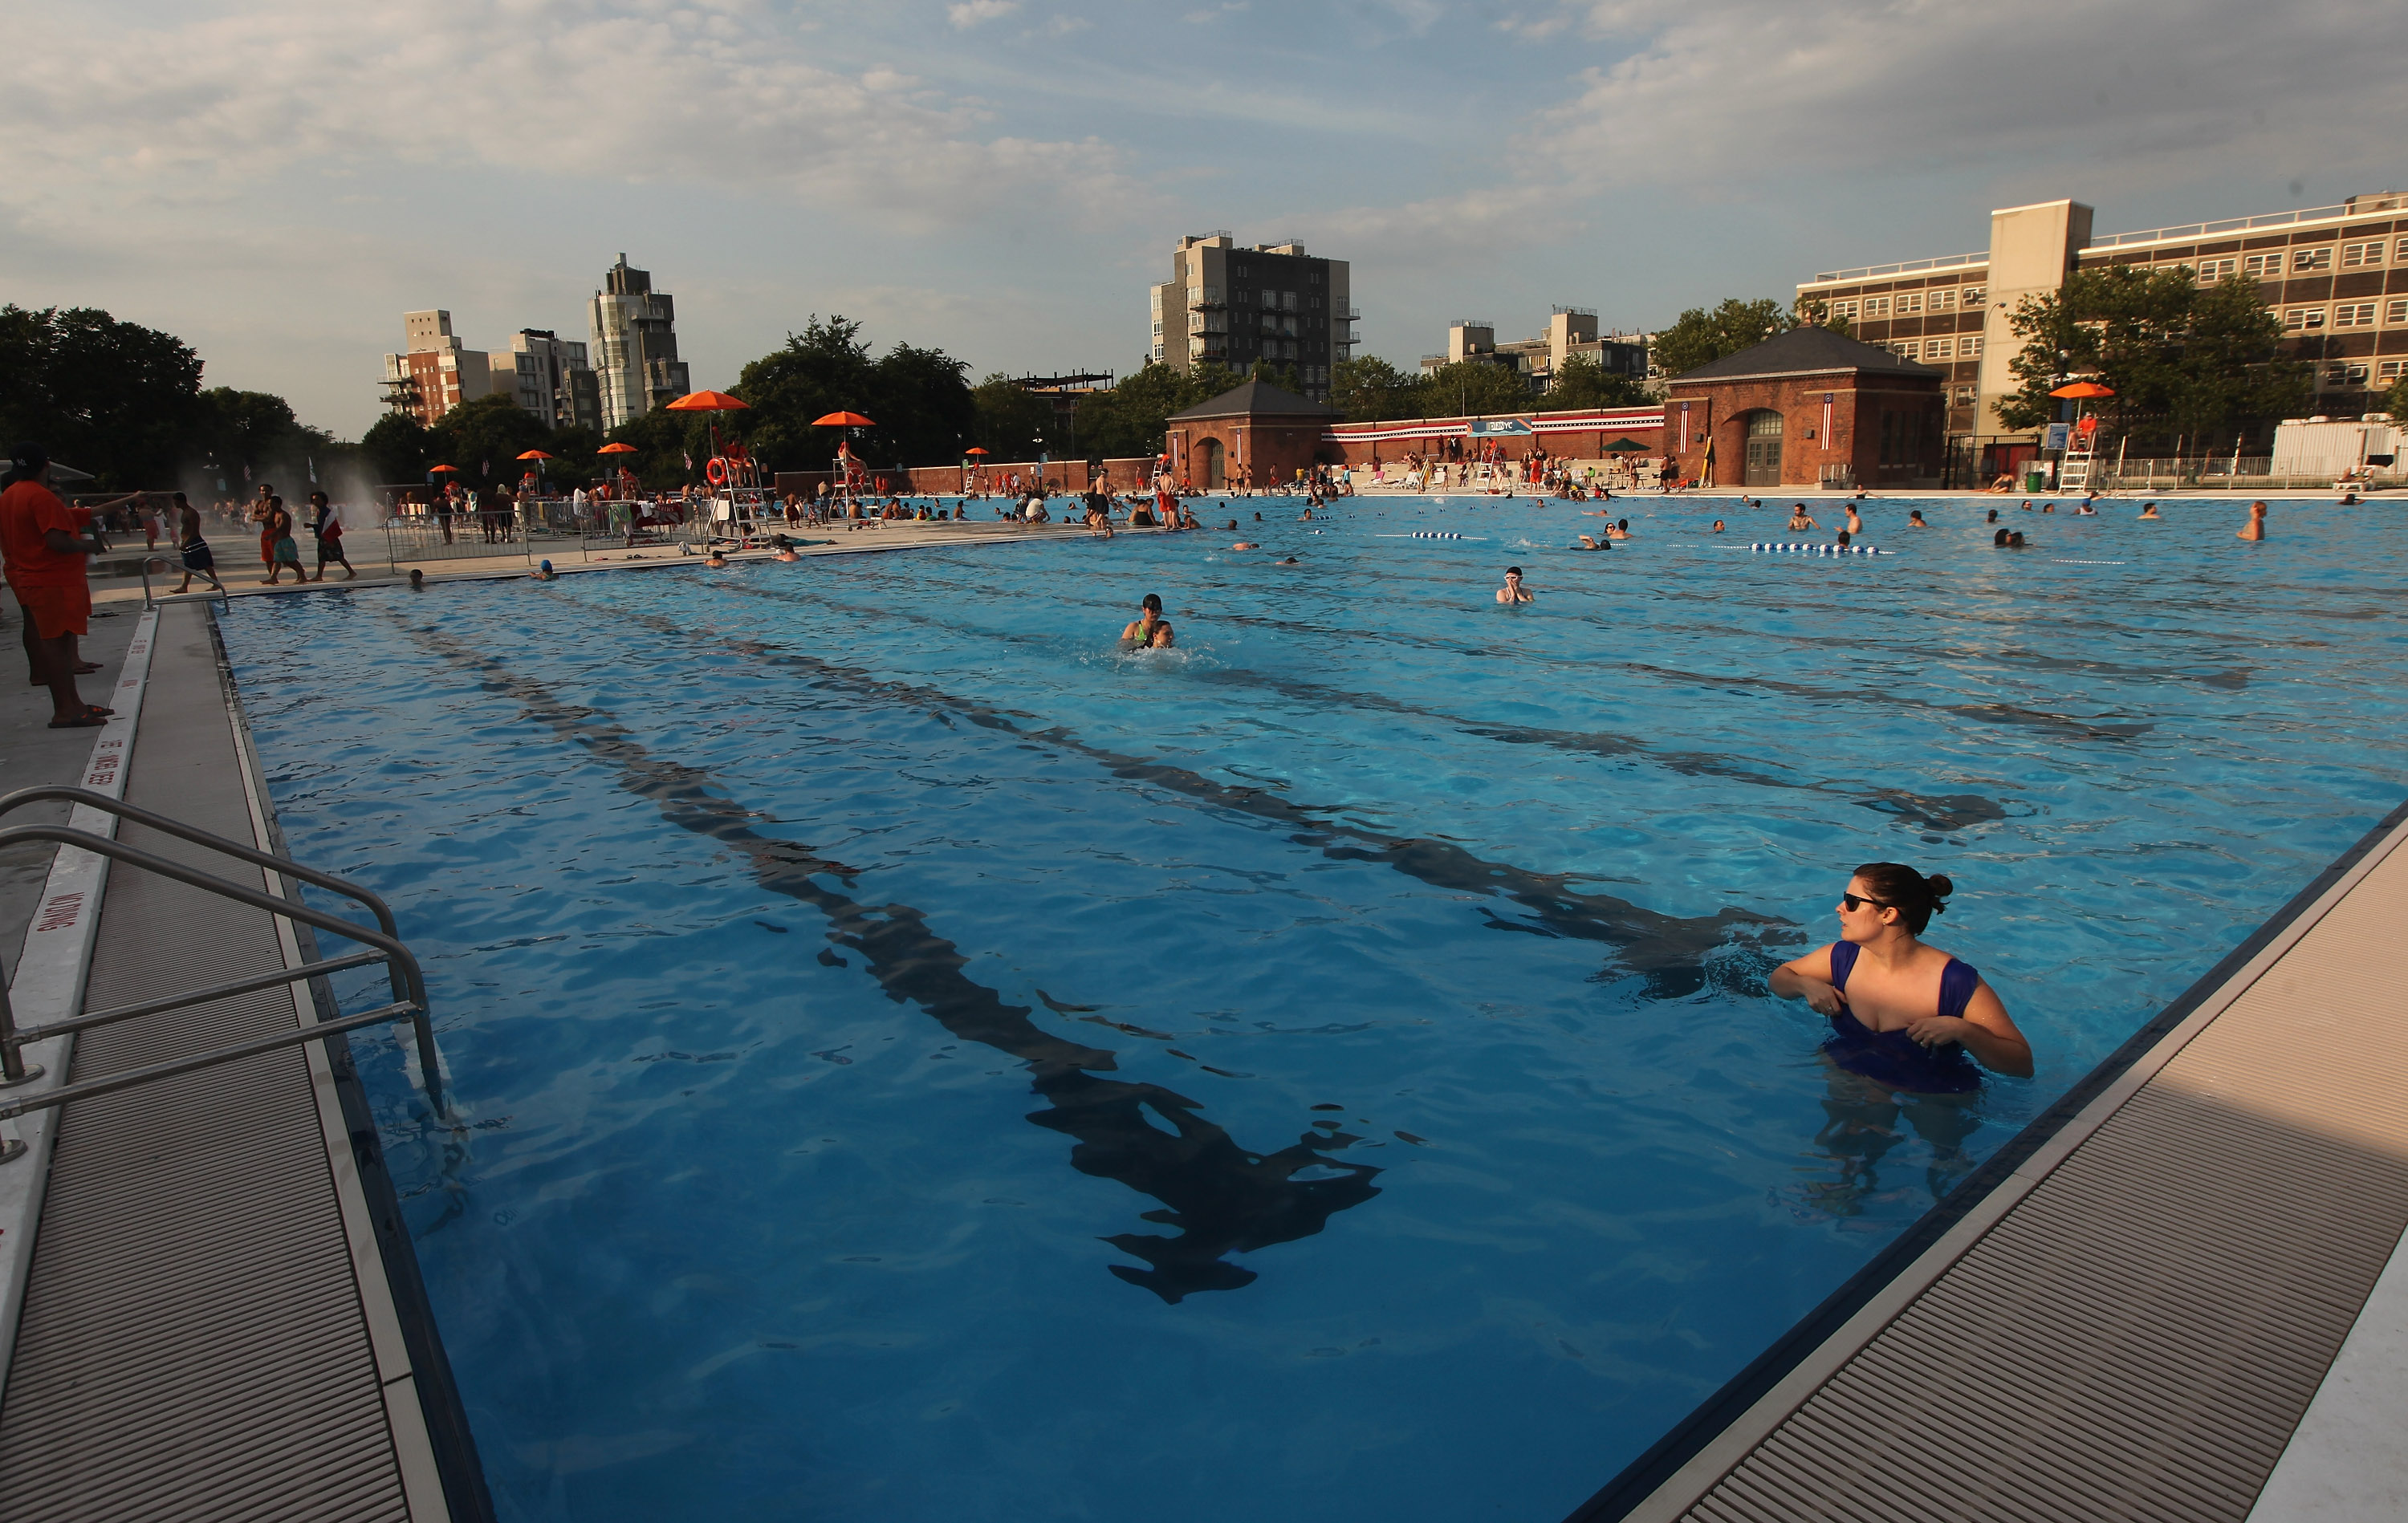 NYC's 10 coolest outdoor pools to check out this summer